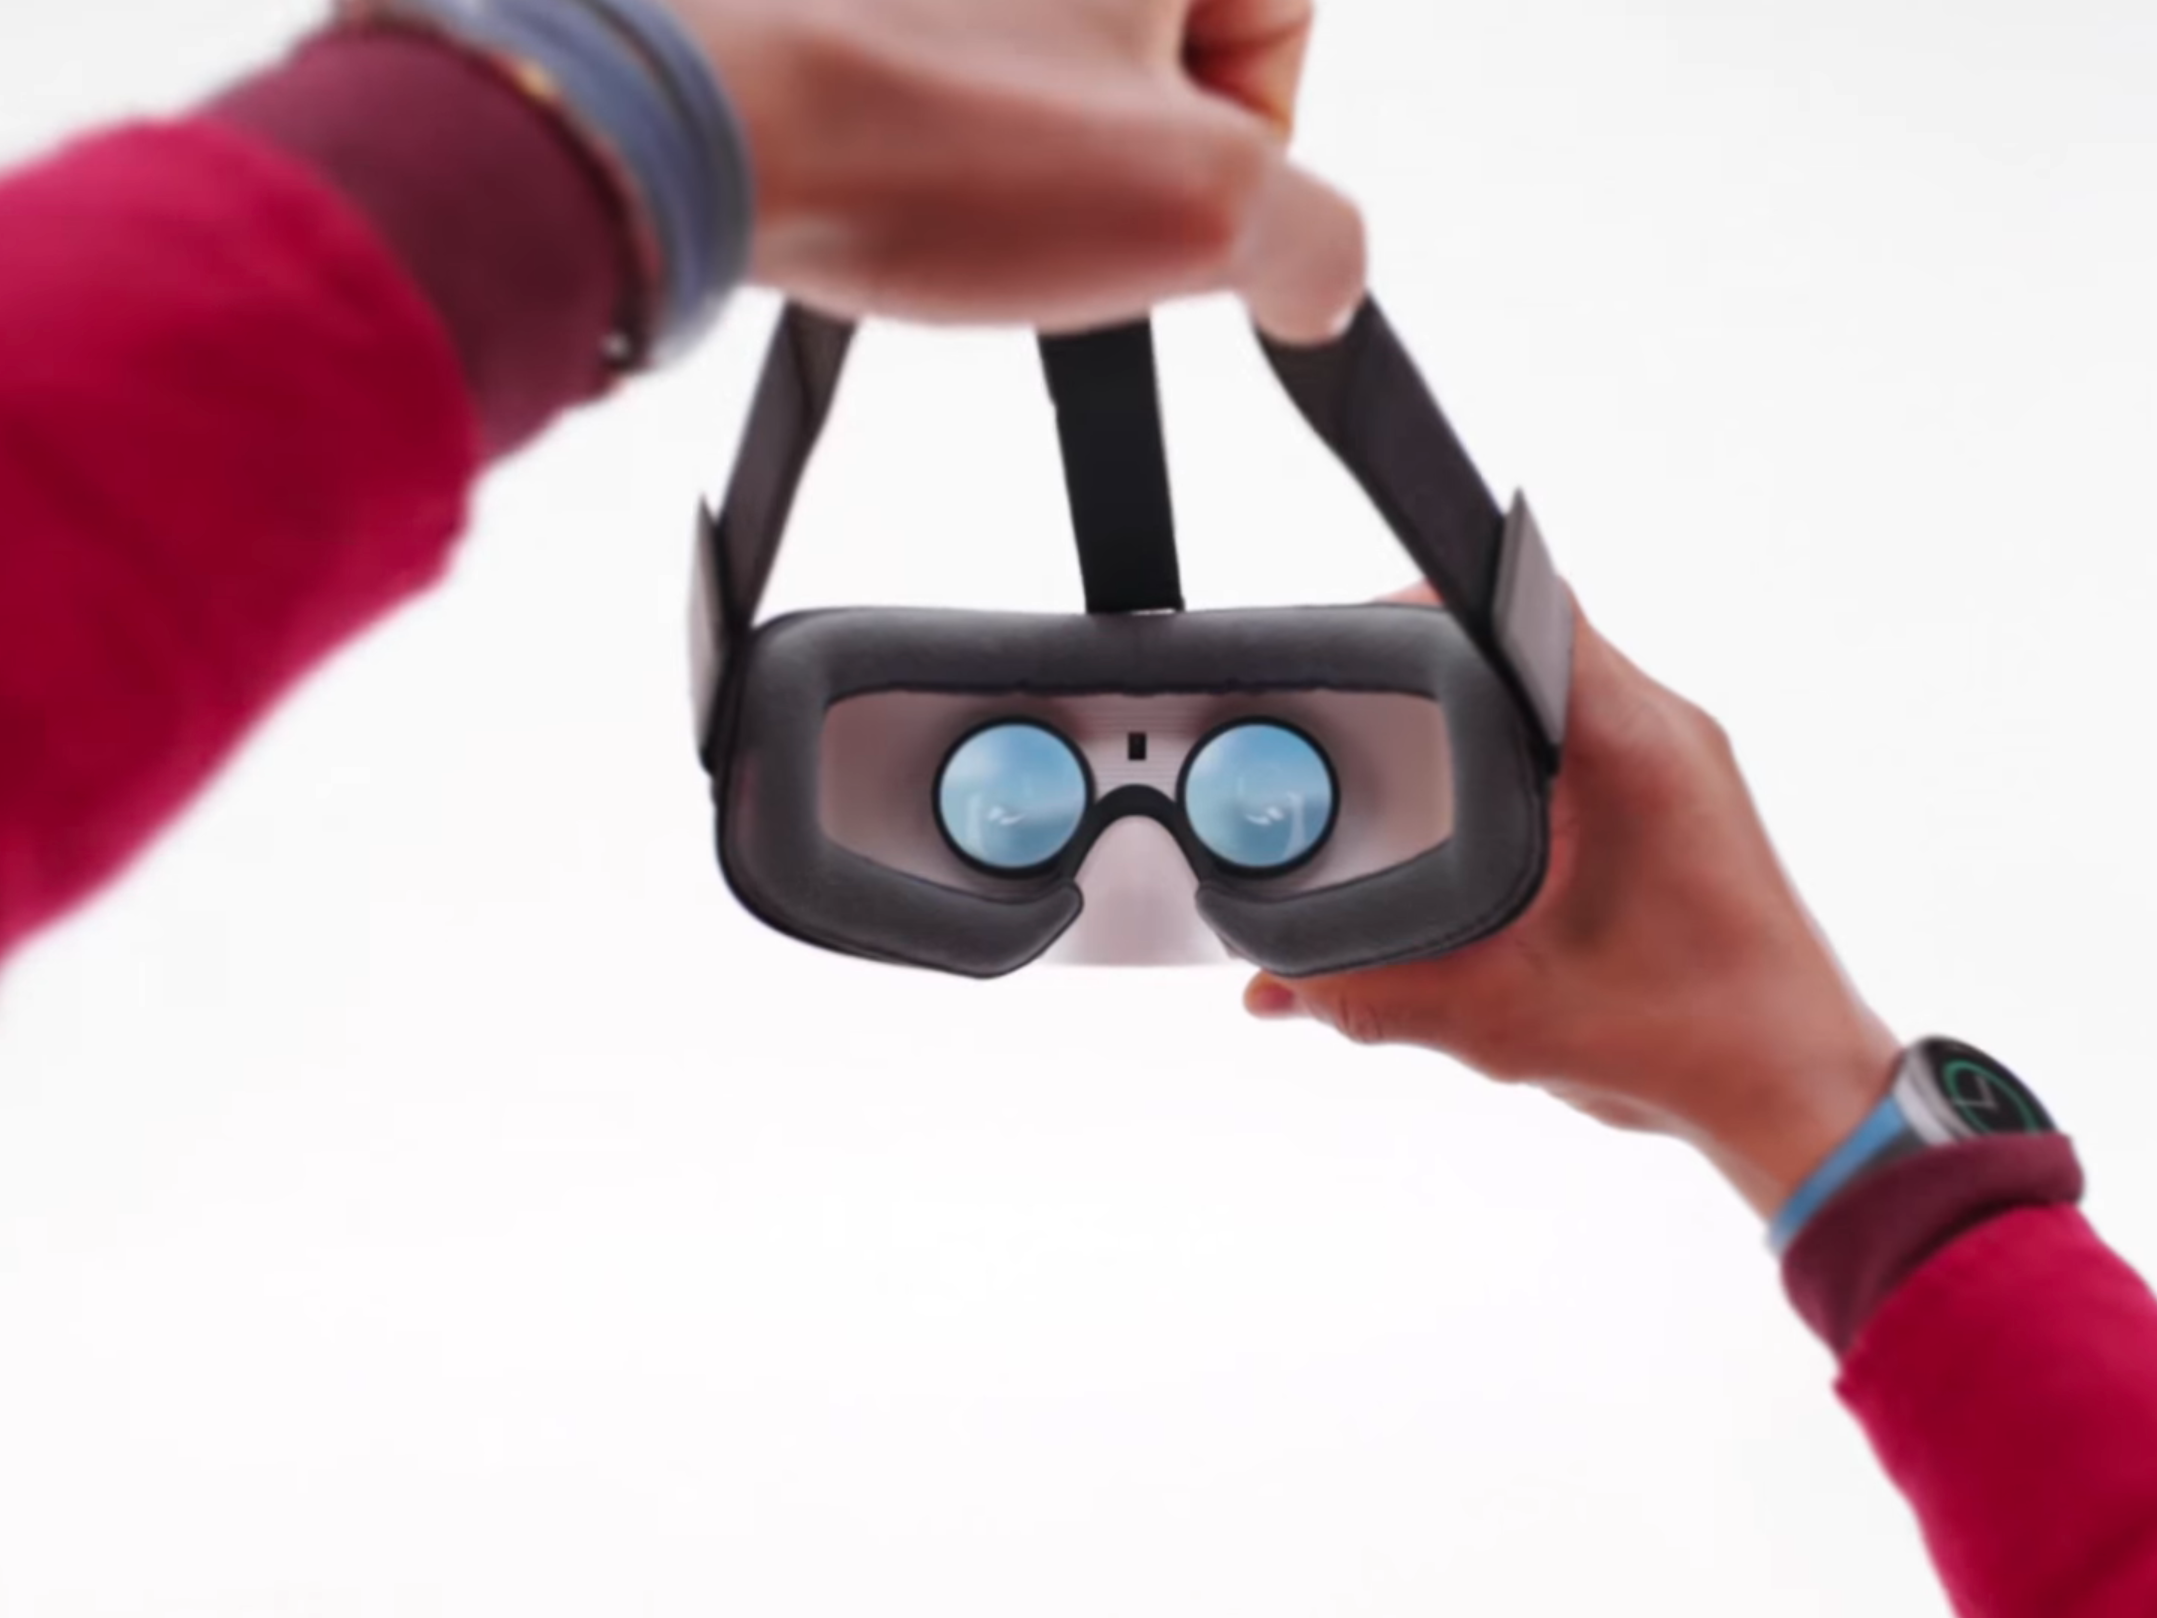 Vr Headset HD PNG - 95969